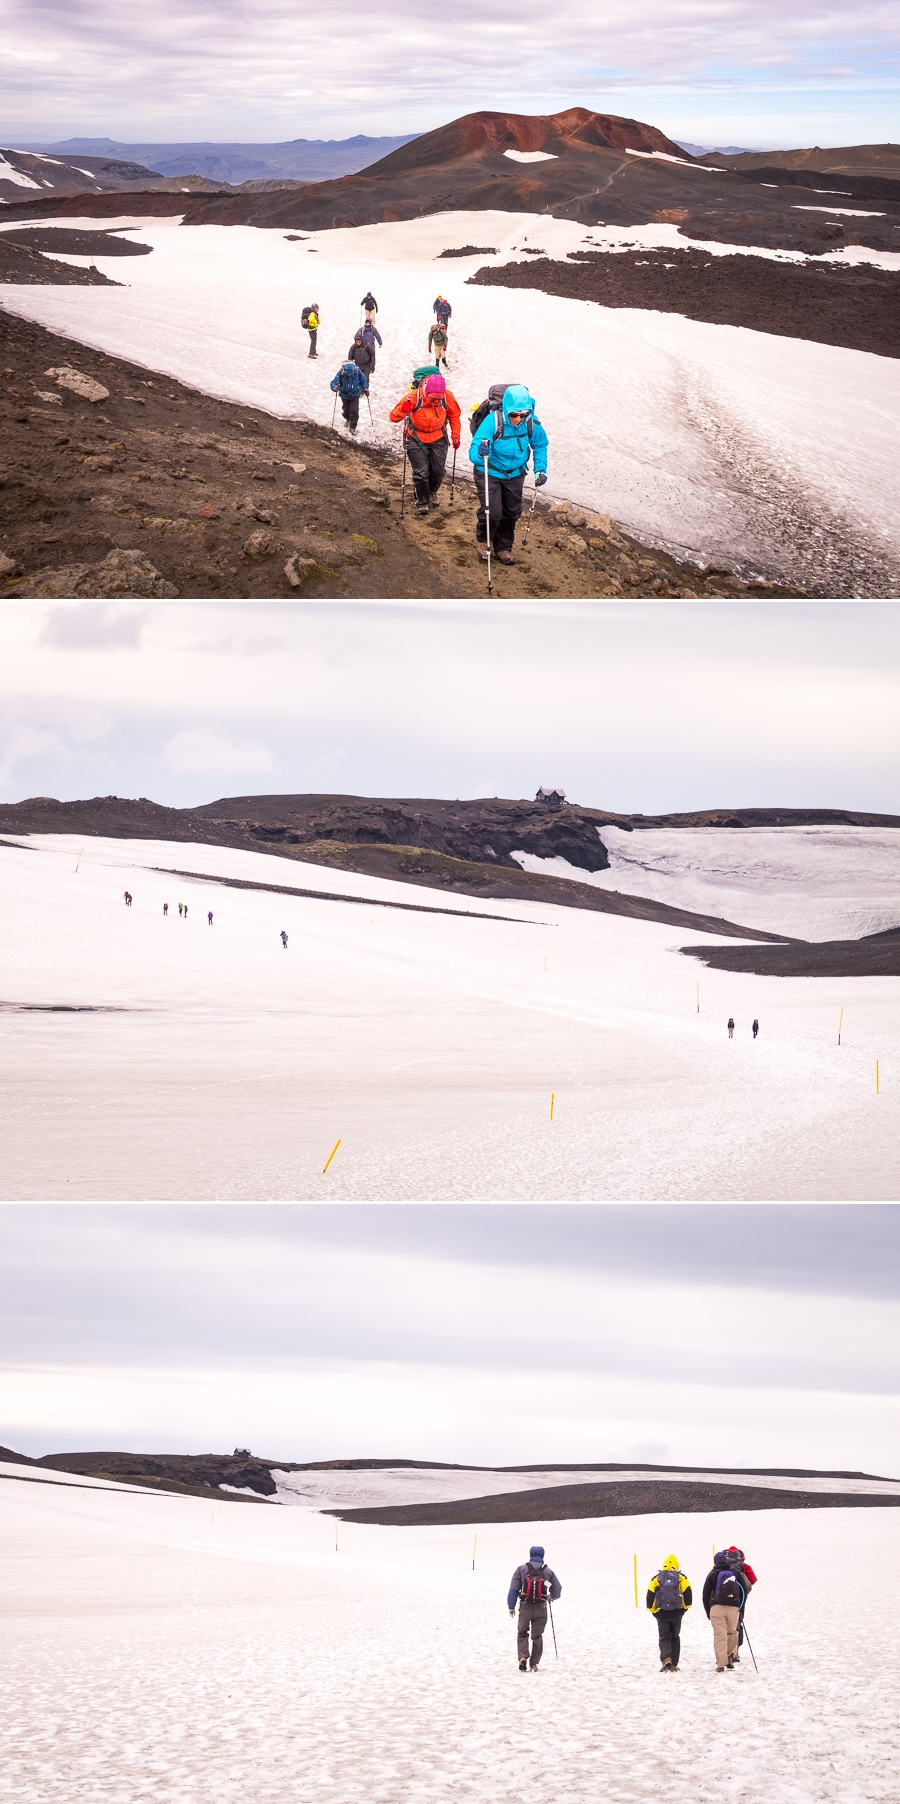 Hiking through snow on Day 6 - Laugavegur Fimmvörðuháls Trail - Icelandic Highlands